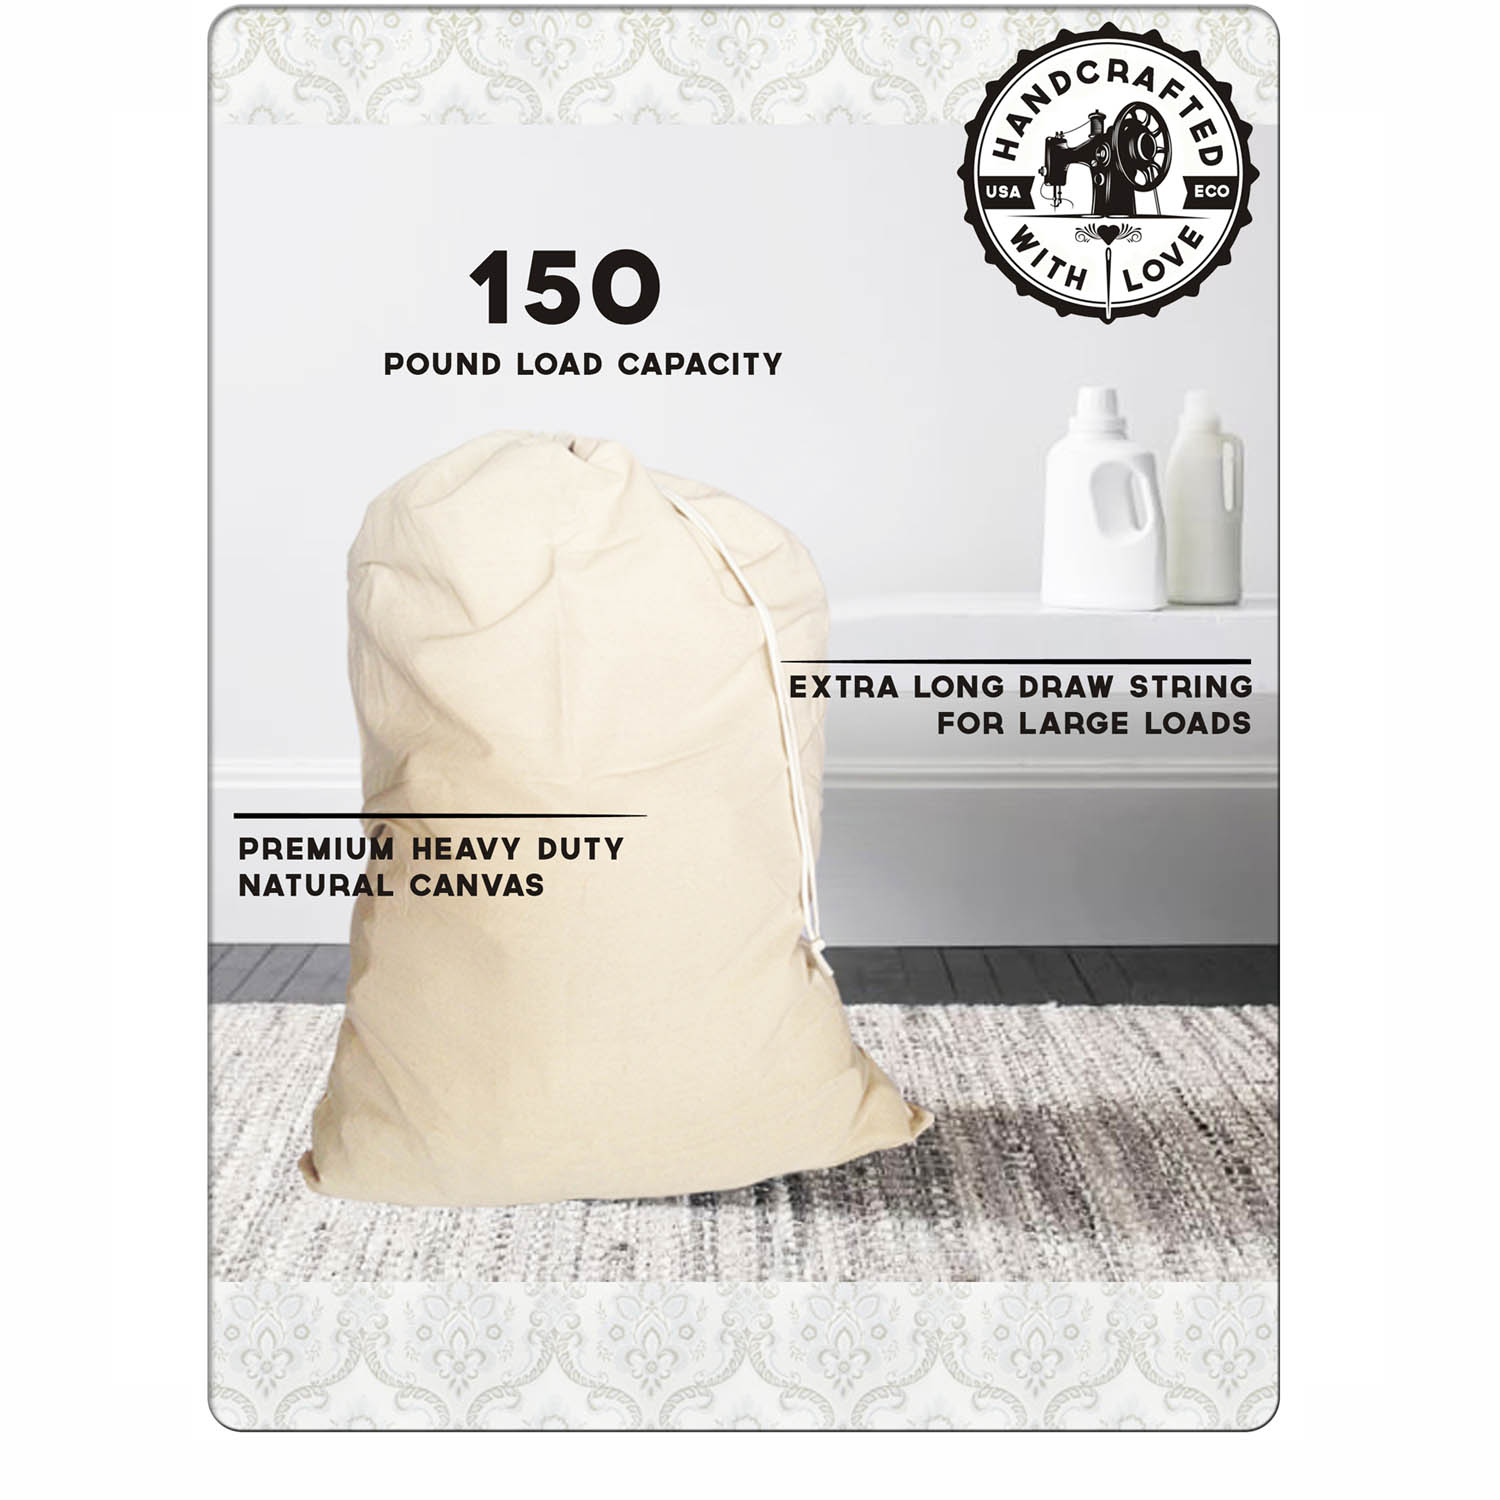 b4da9843f24c Laundry Bag Made in America. Heavy Duty and Oversized. Holds up to 150  Pounds of Laundry and Bedding. Fits All Hampers. Proudly Made in Cali! — ...